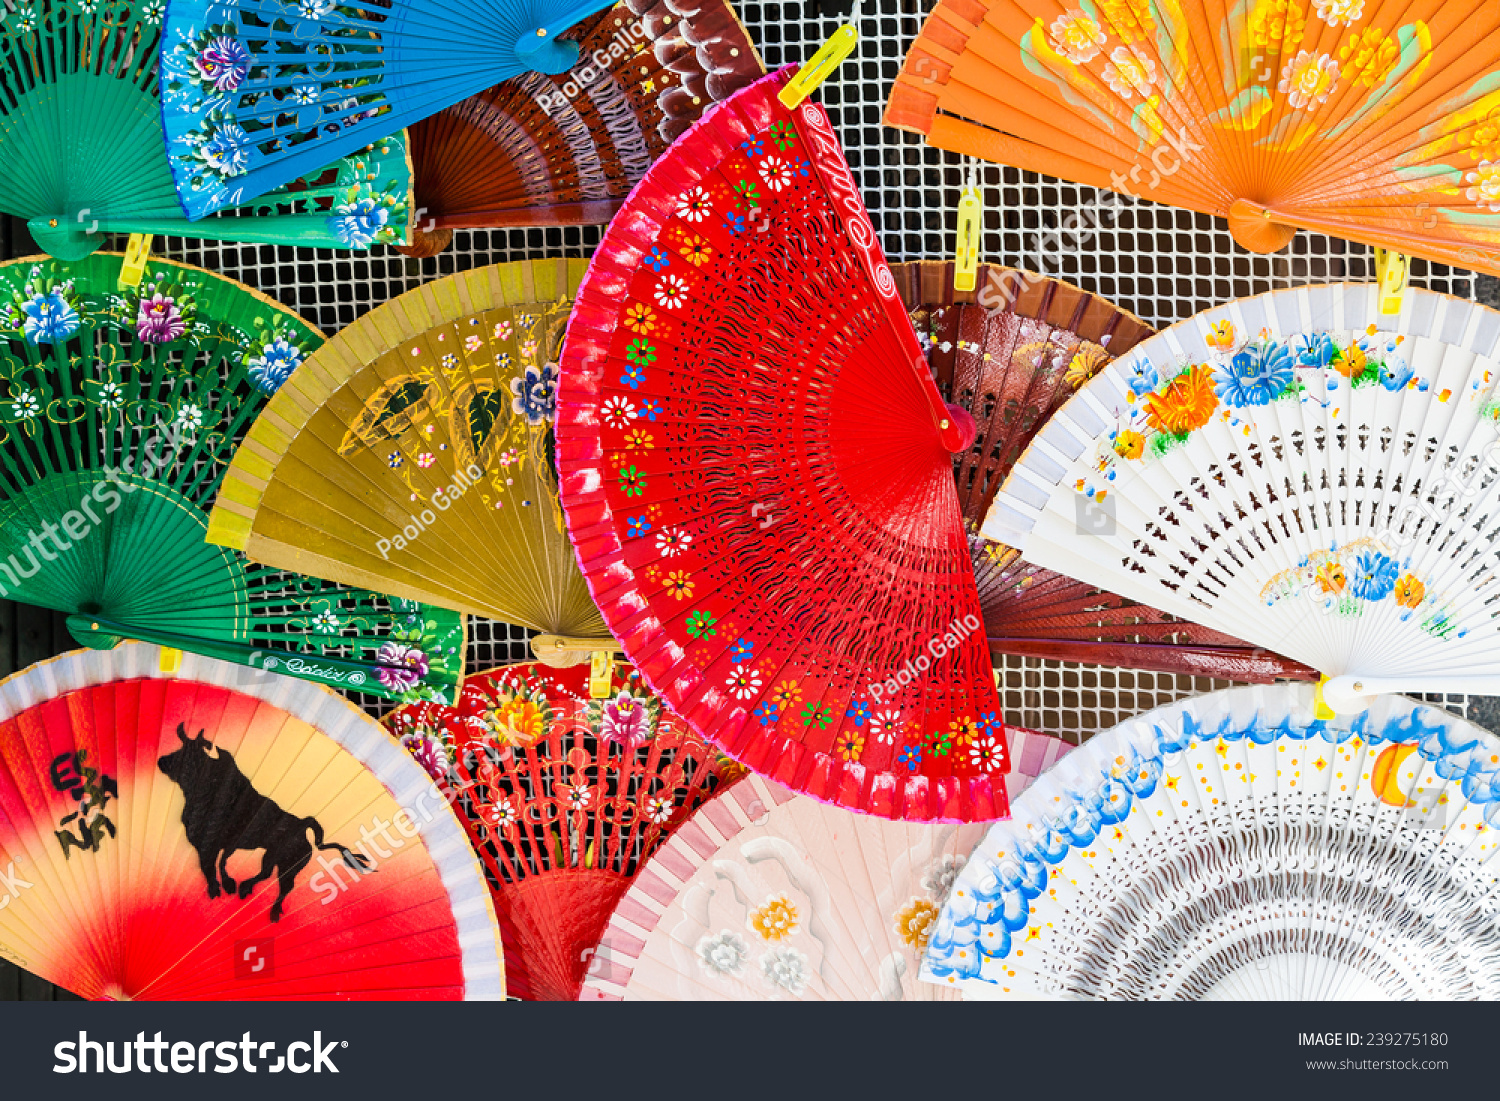 Bright colors on these traditional Spanish Fans in Saville, Andalusia  Region.